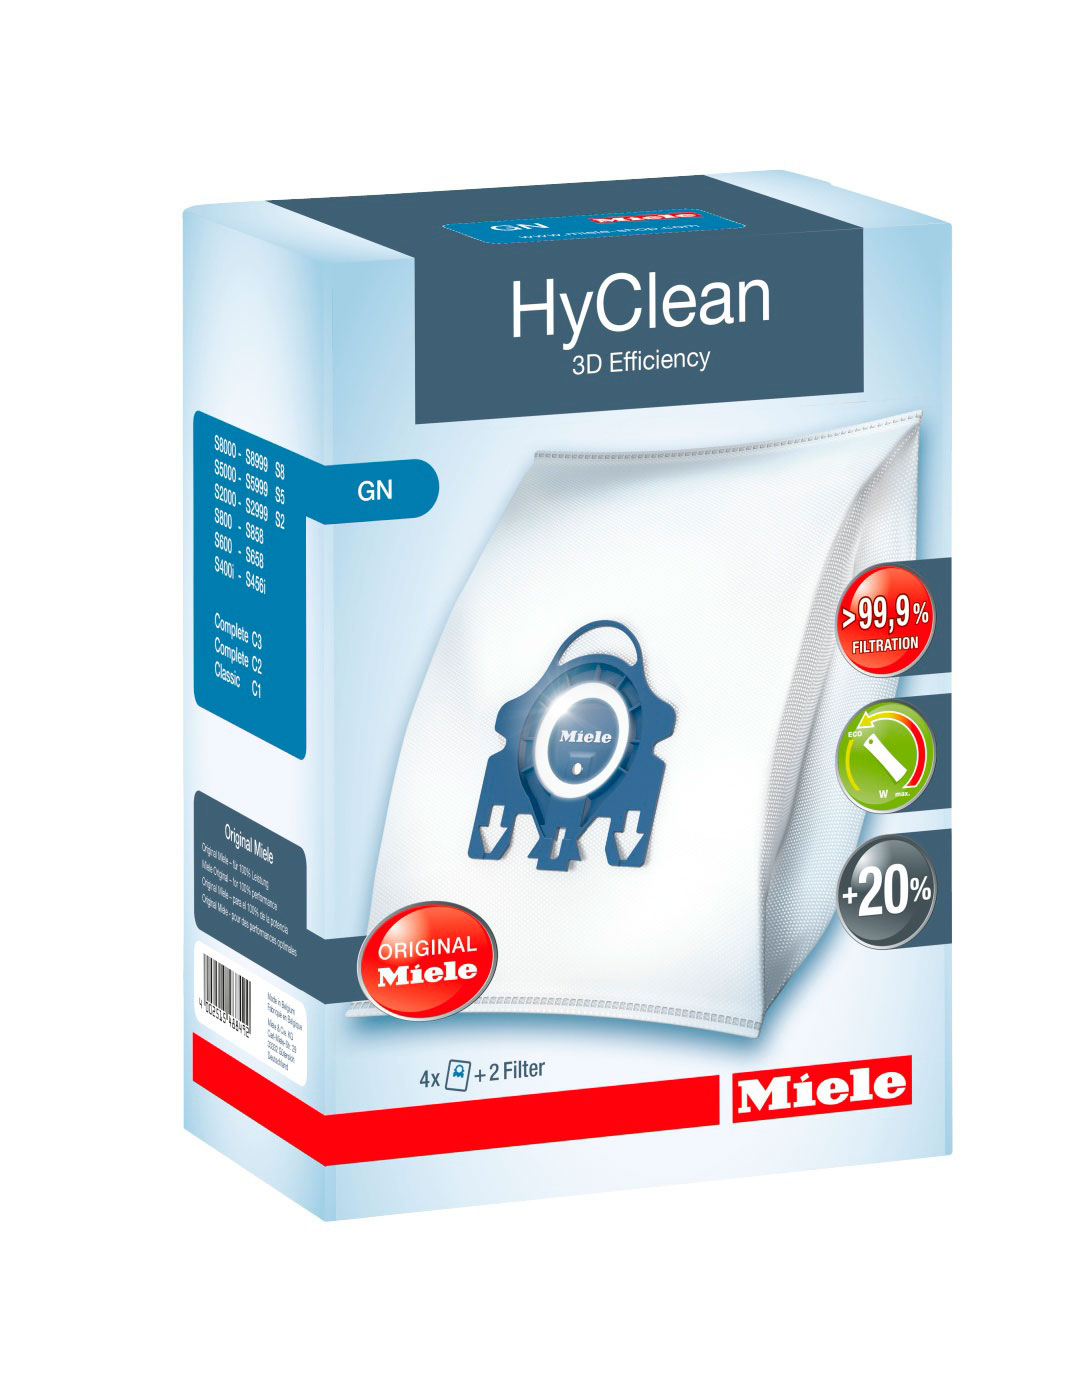 Миле Пылесбор. мешок GN HyClean 3D Efficiency Miele